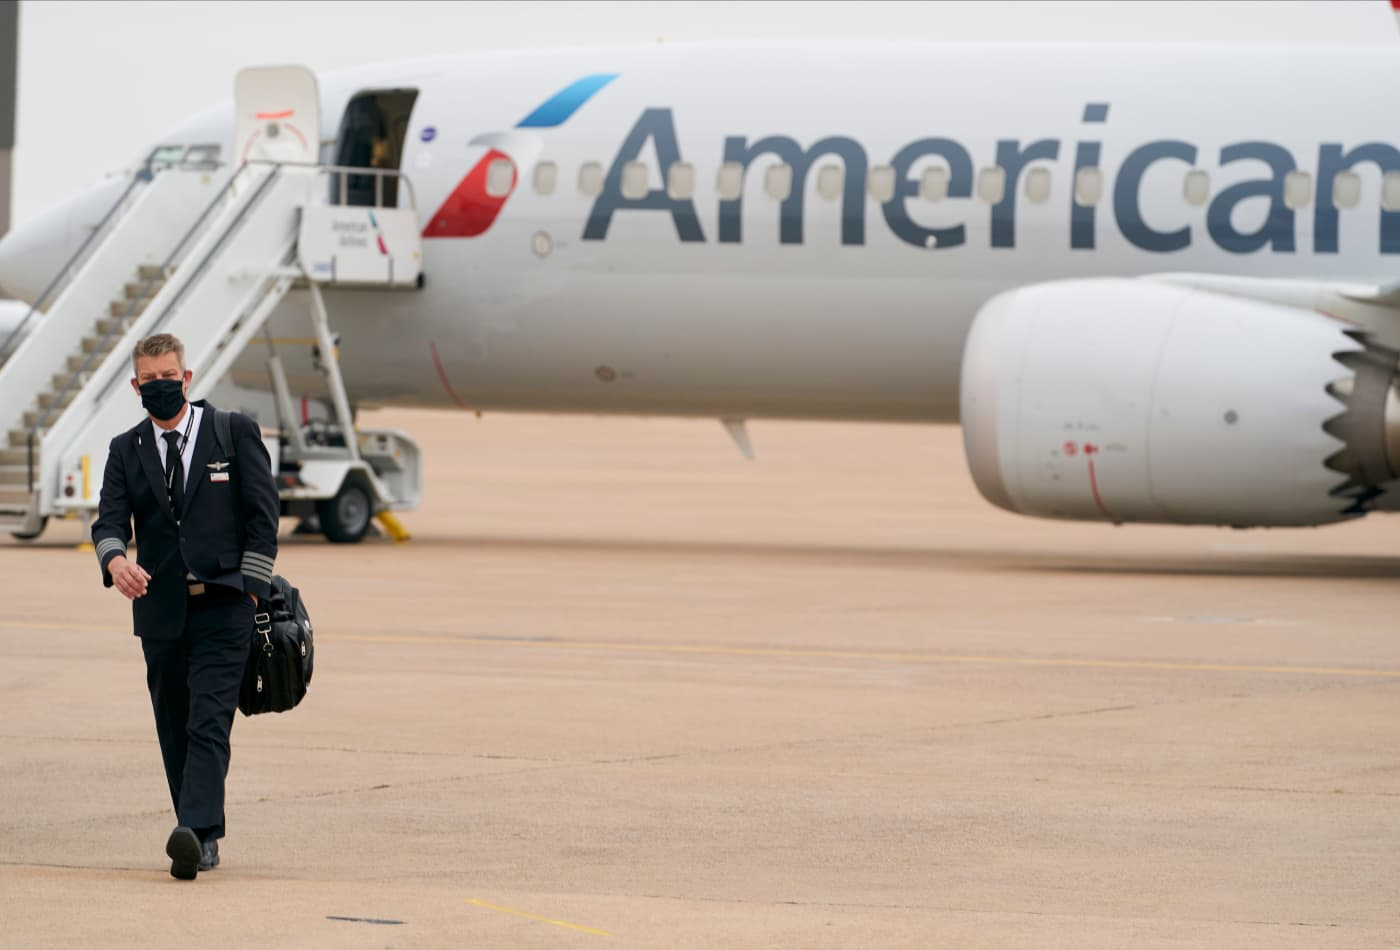 Sleeping at the airport: American Airlines flight attendant, pilot unions complain about lack of hotel rooms